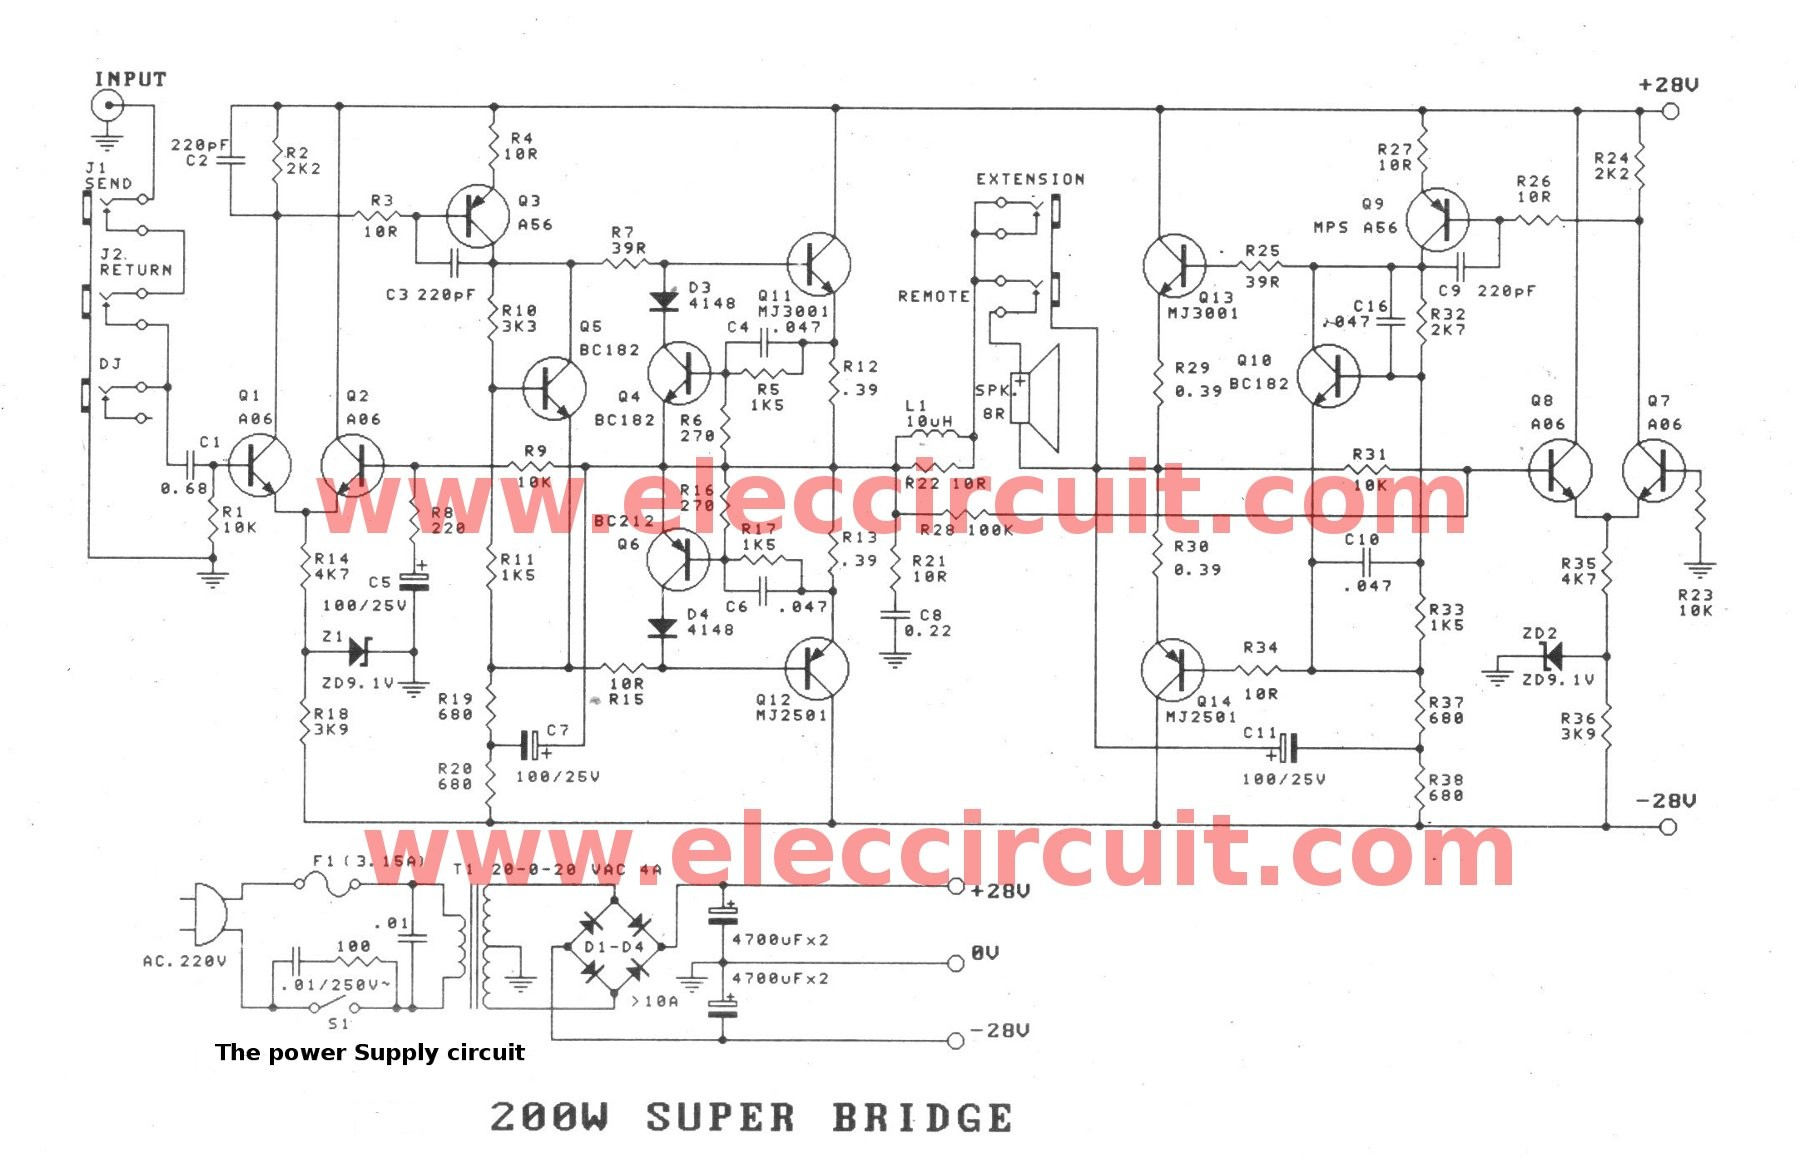 Basic Amplifier Circuit Diagram New Wiring Image Electronic Projects Watts Super Bridge Power Amplifiers Circuits The 4 Ohm